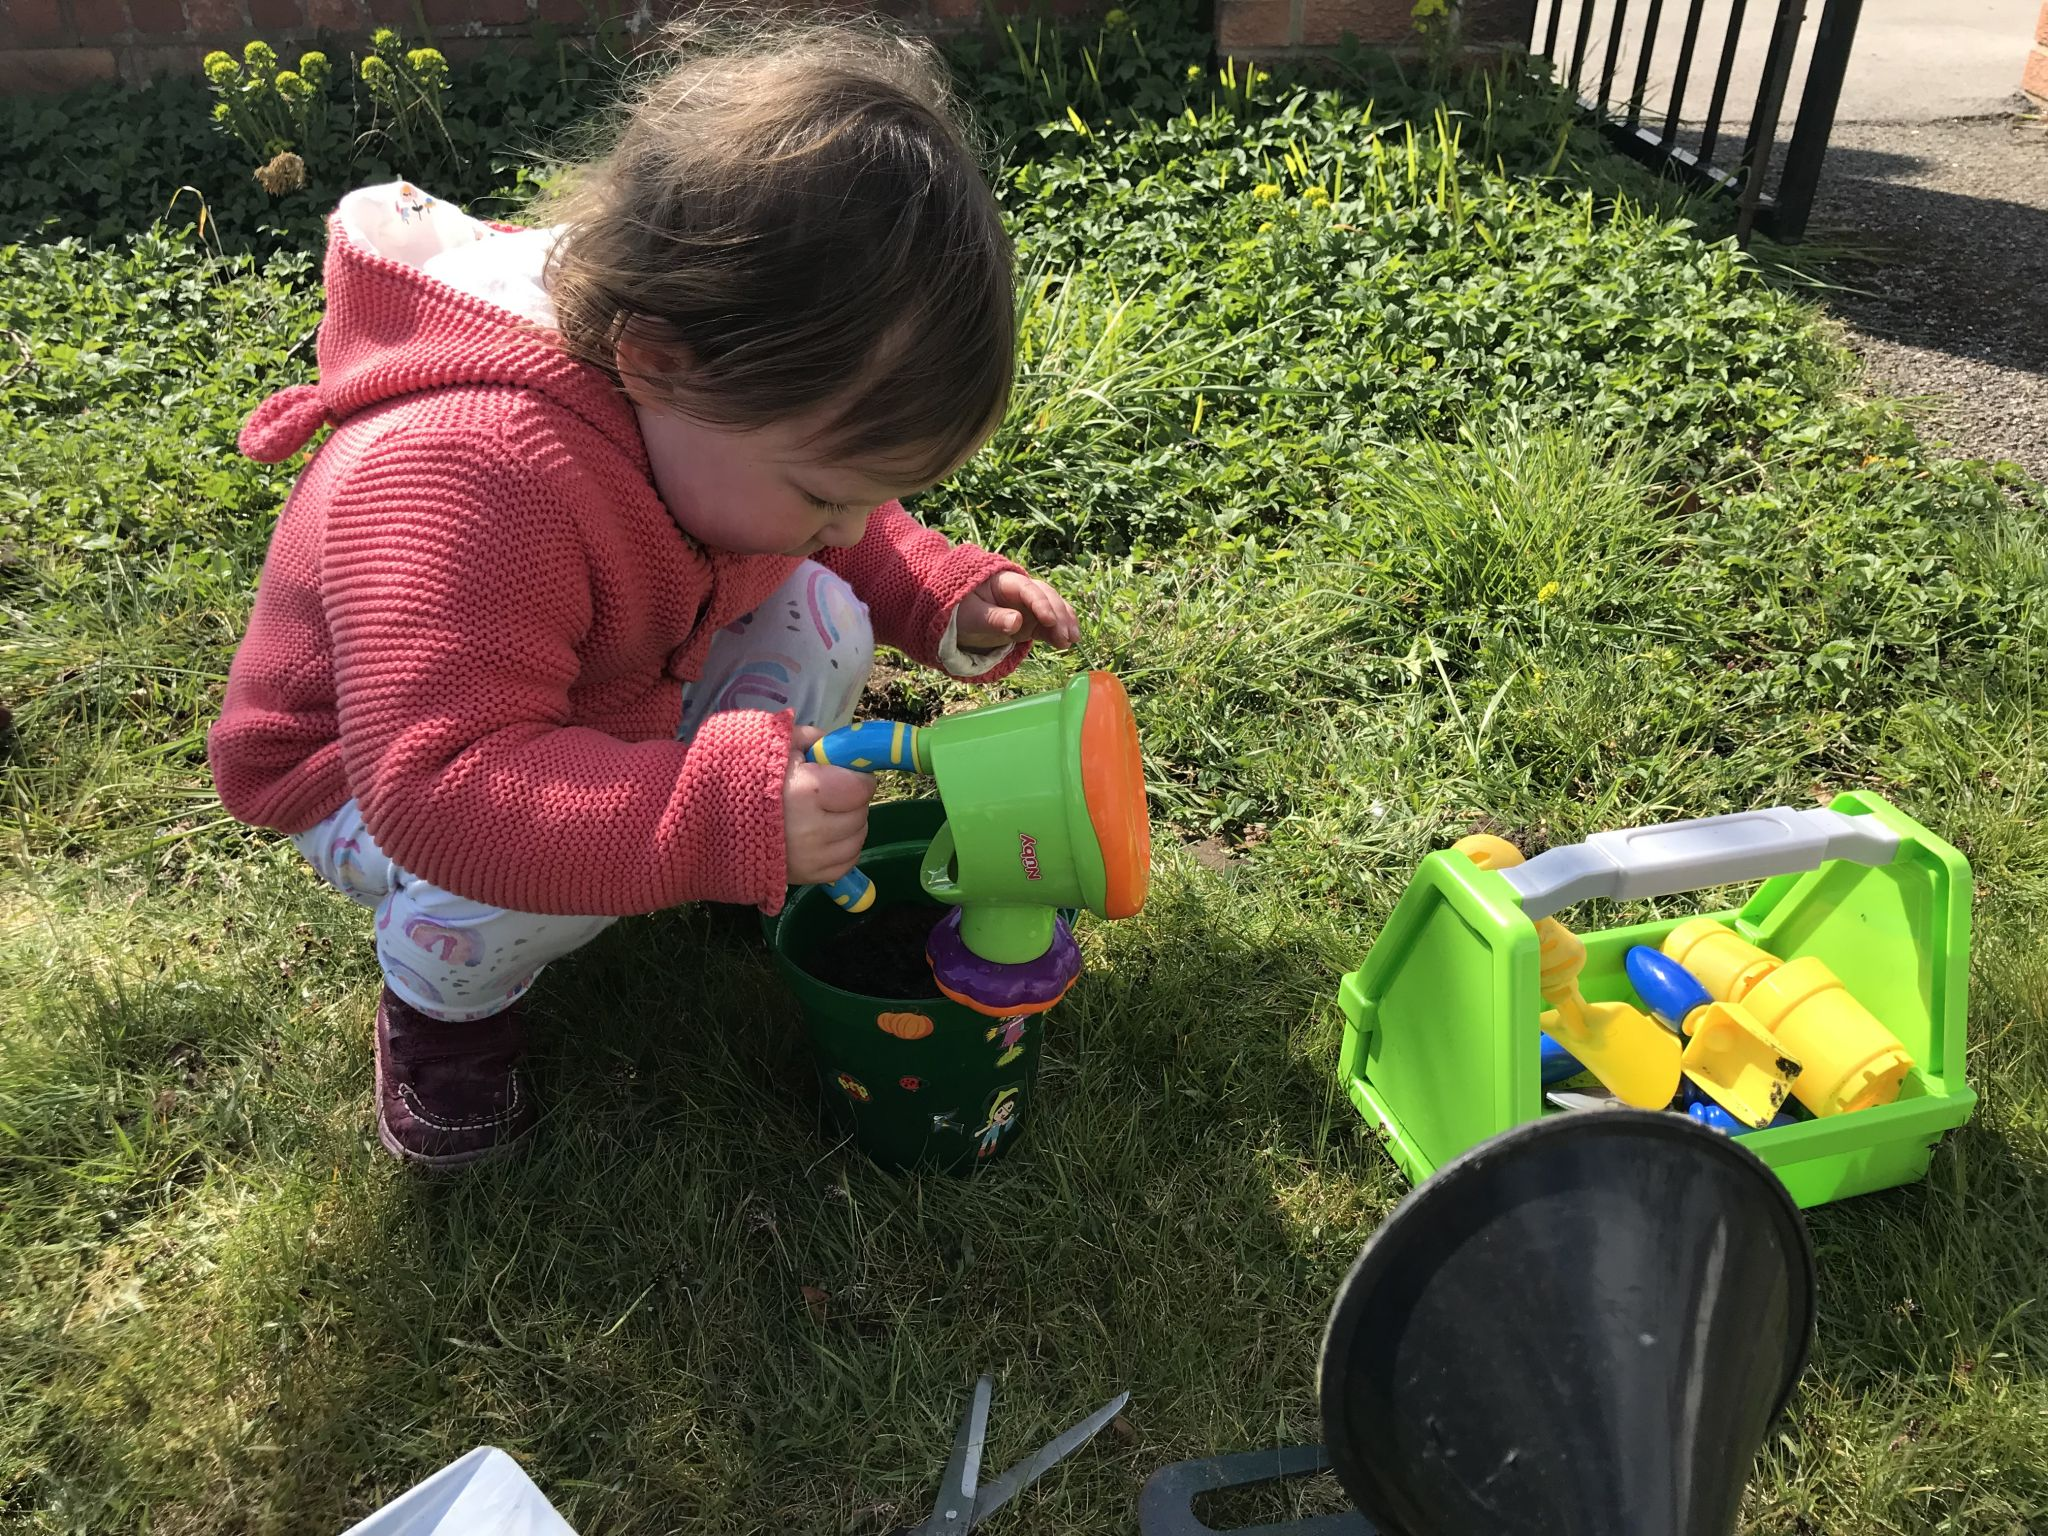 A toddler gardening with a